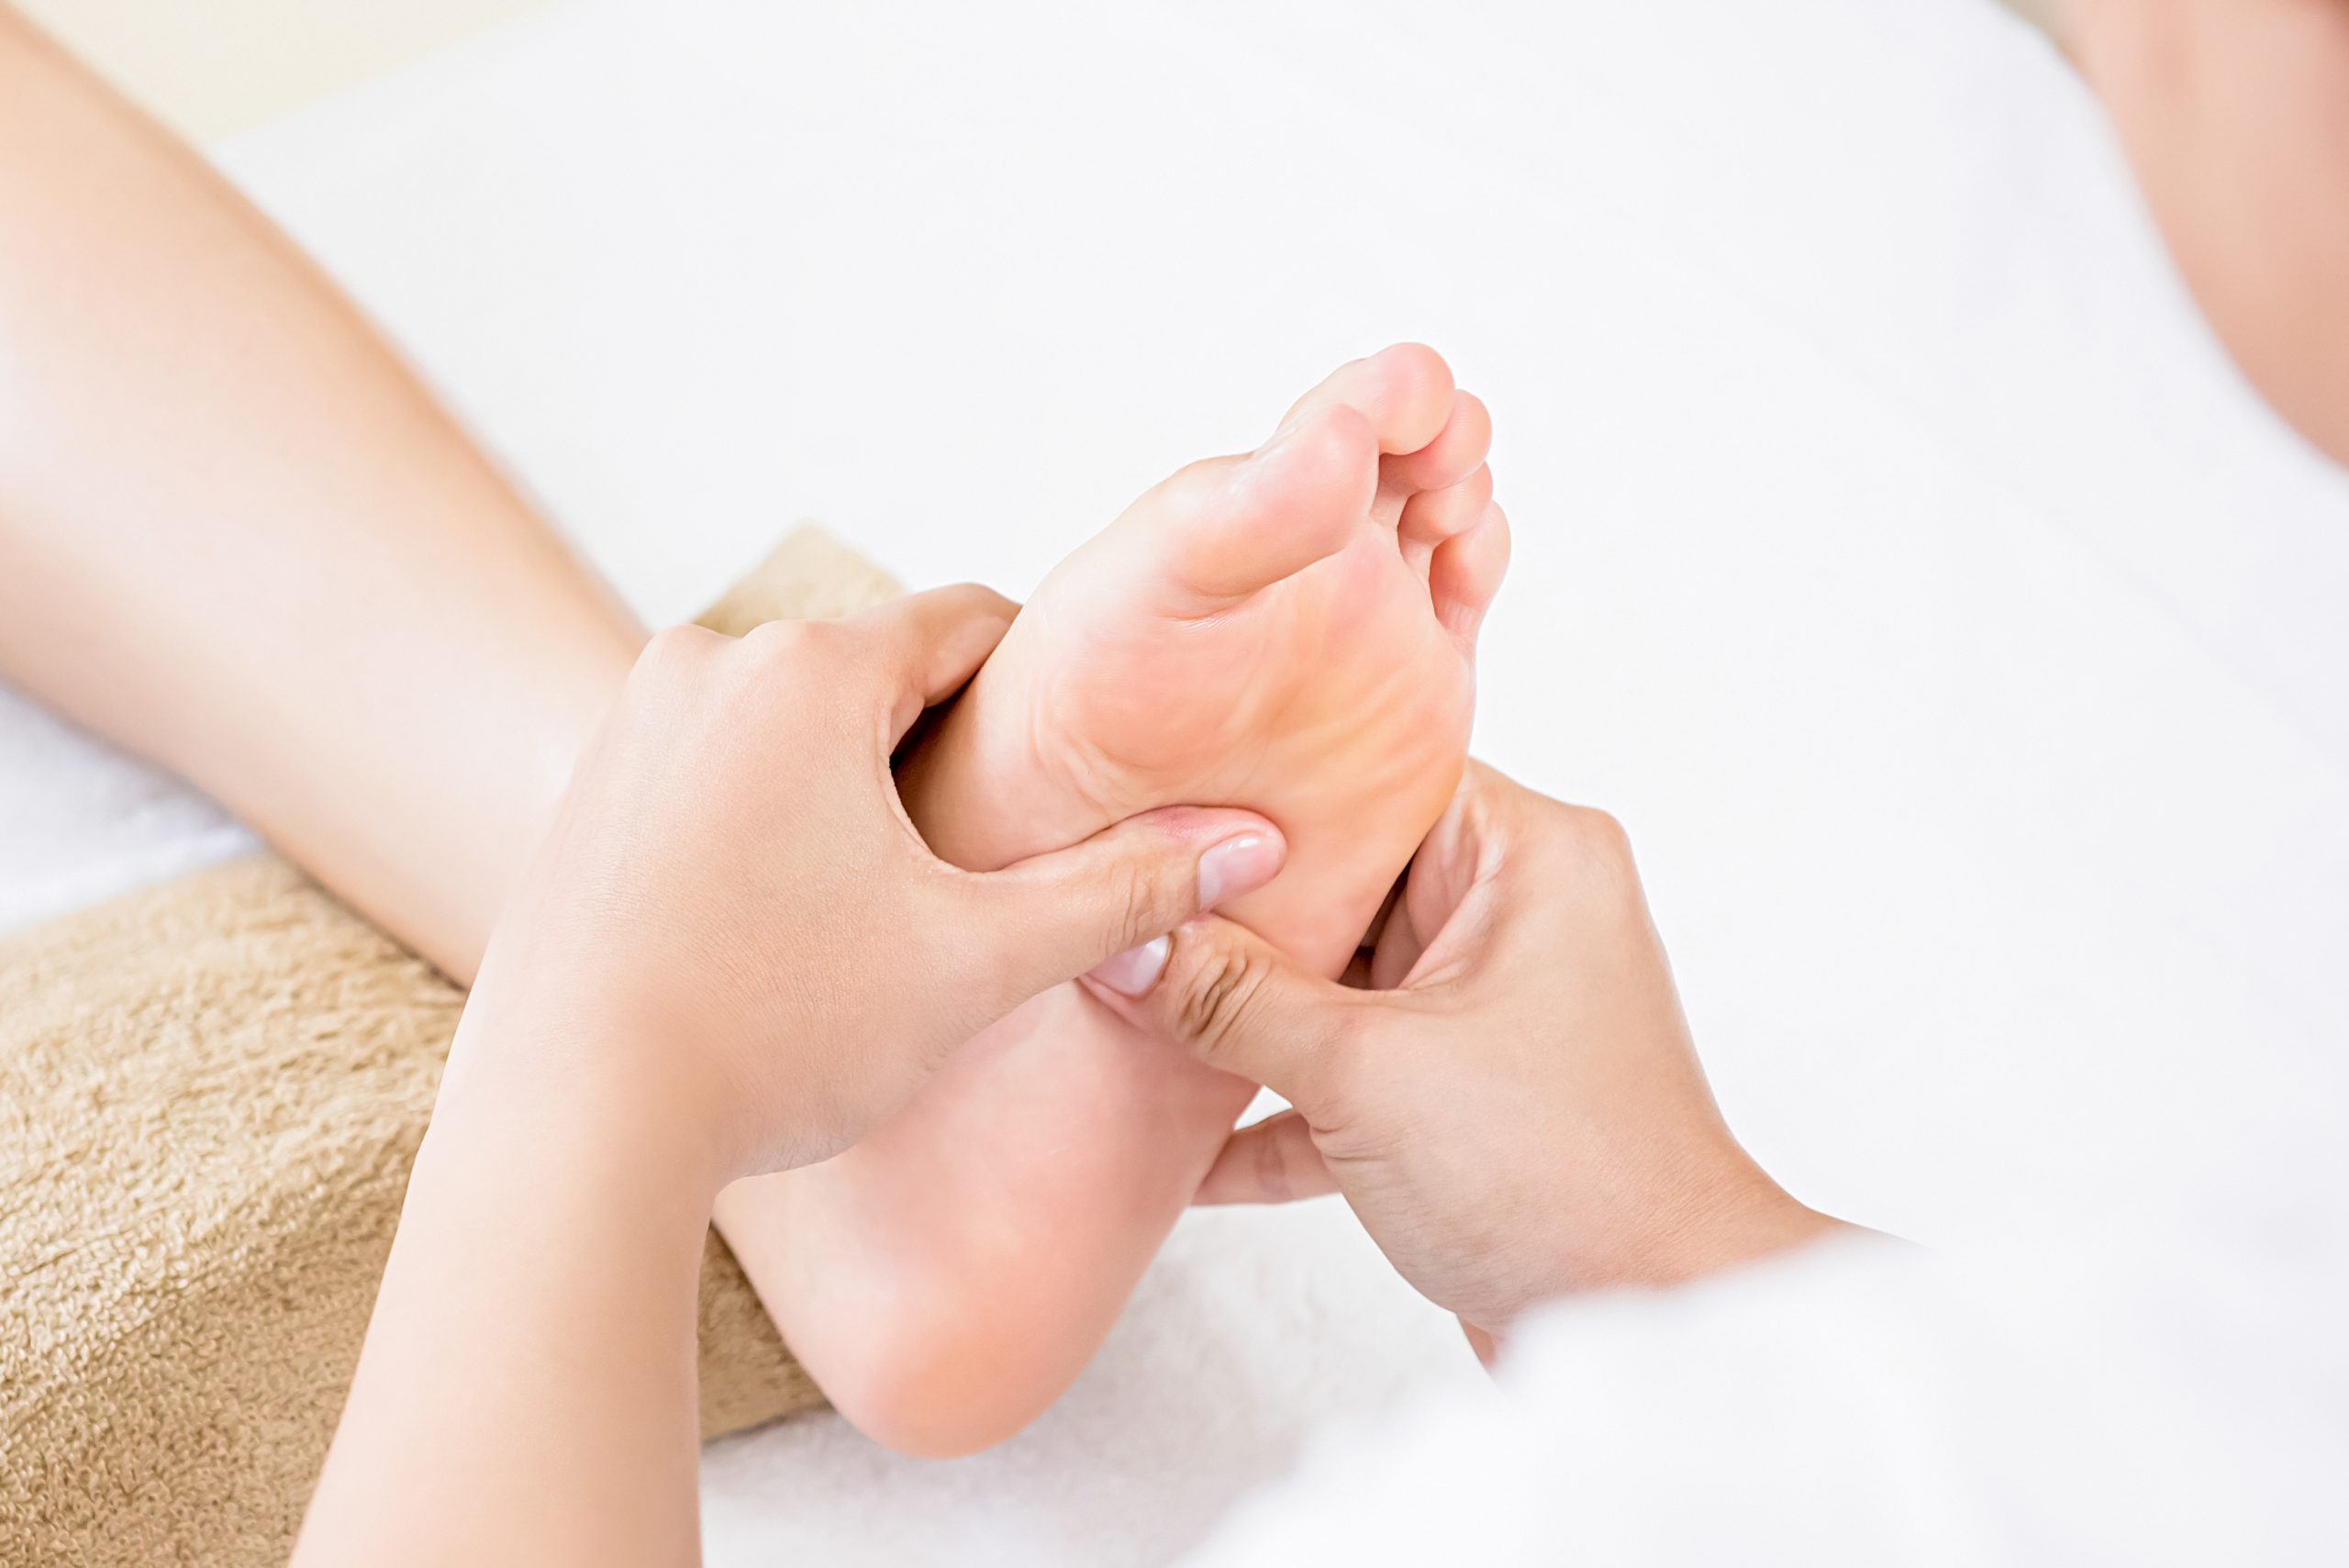 Relaxing traditional Thai foot reflexology massage